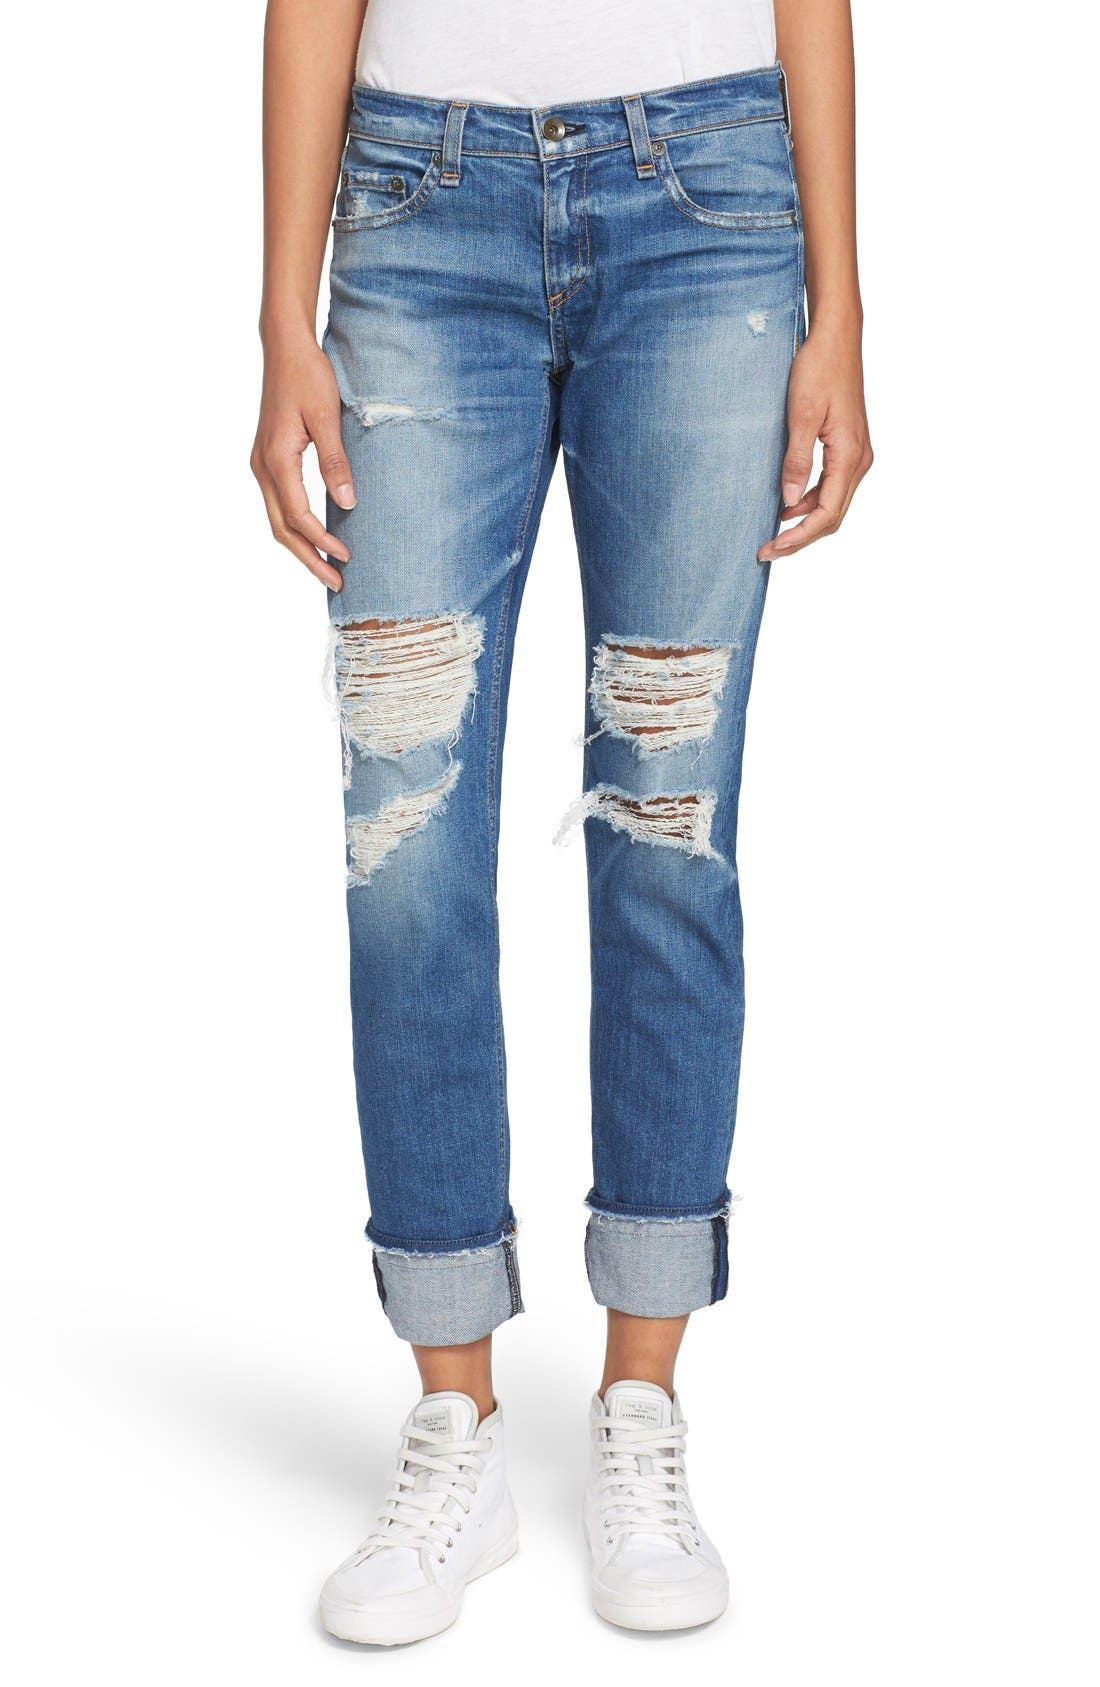 'The Dre' Slim Fit Boyfriend Jeans,                         Main,                         color, 429